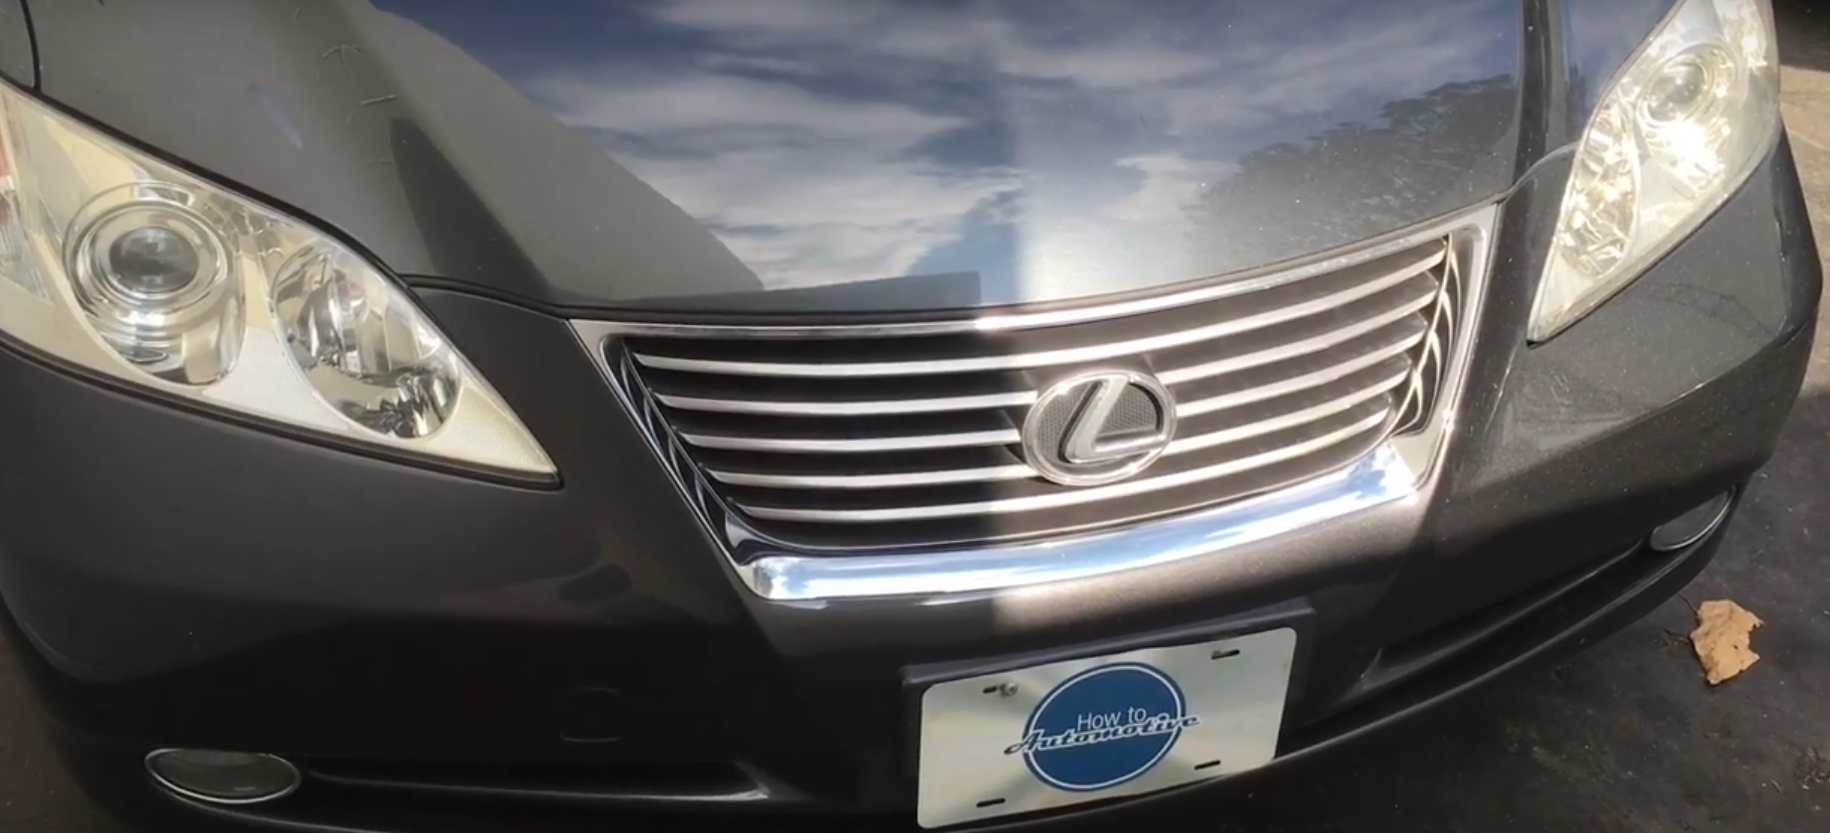 How To Remove And Install The Front Door Panel On A 2009 2012 Lexus